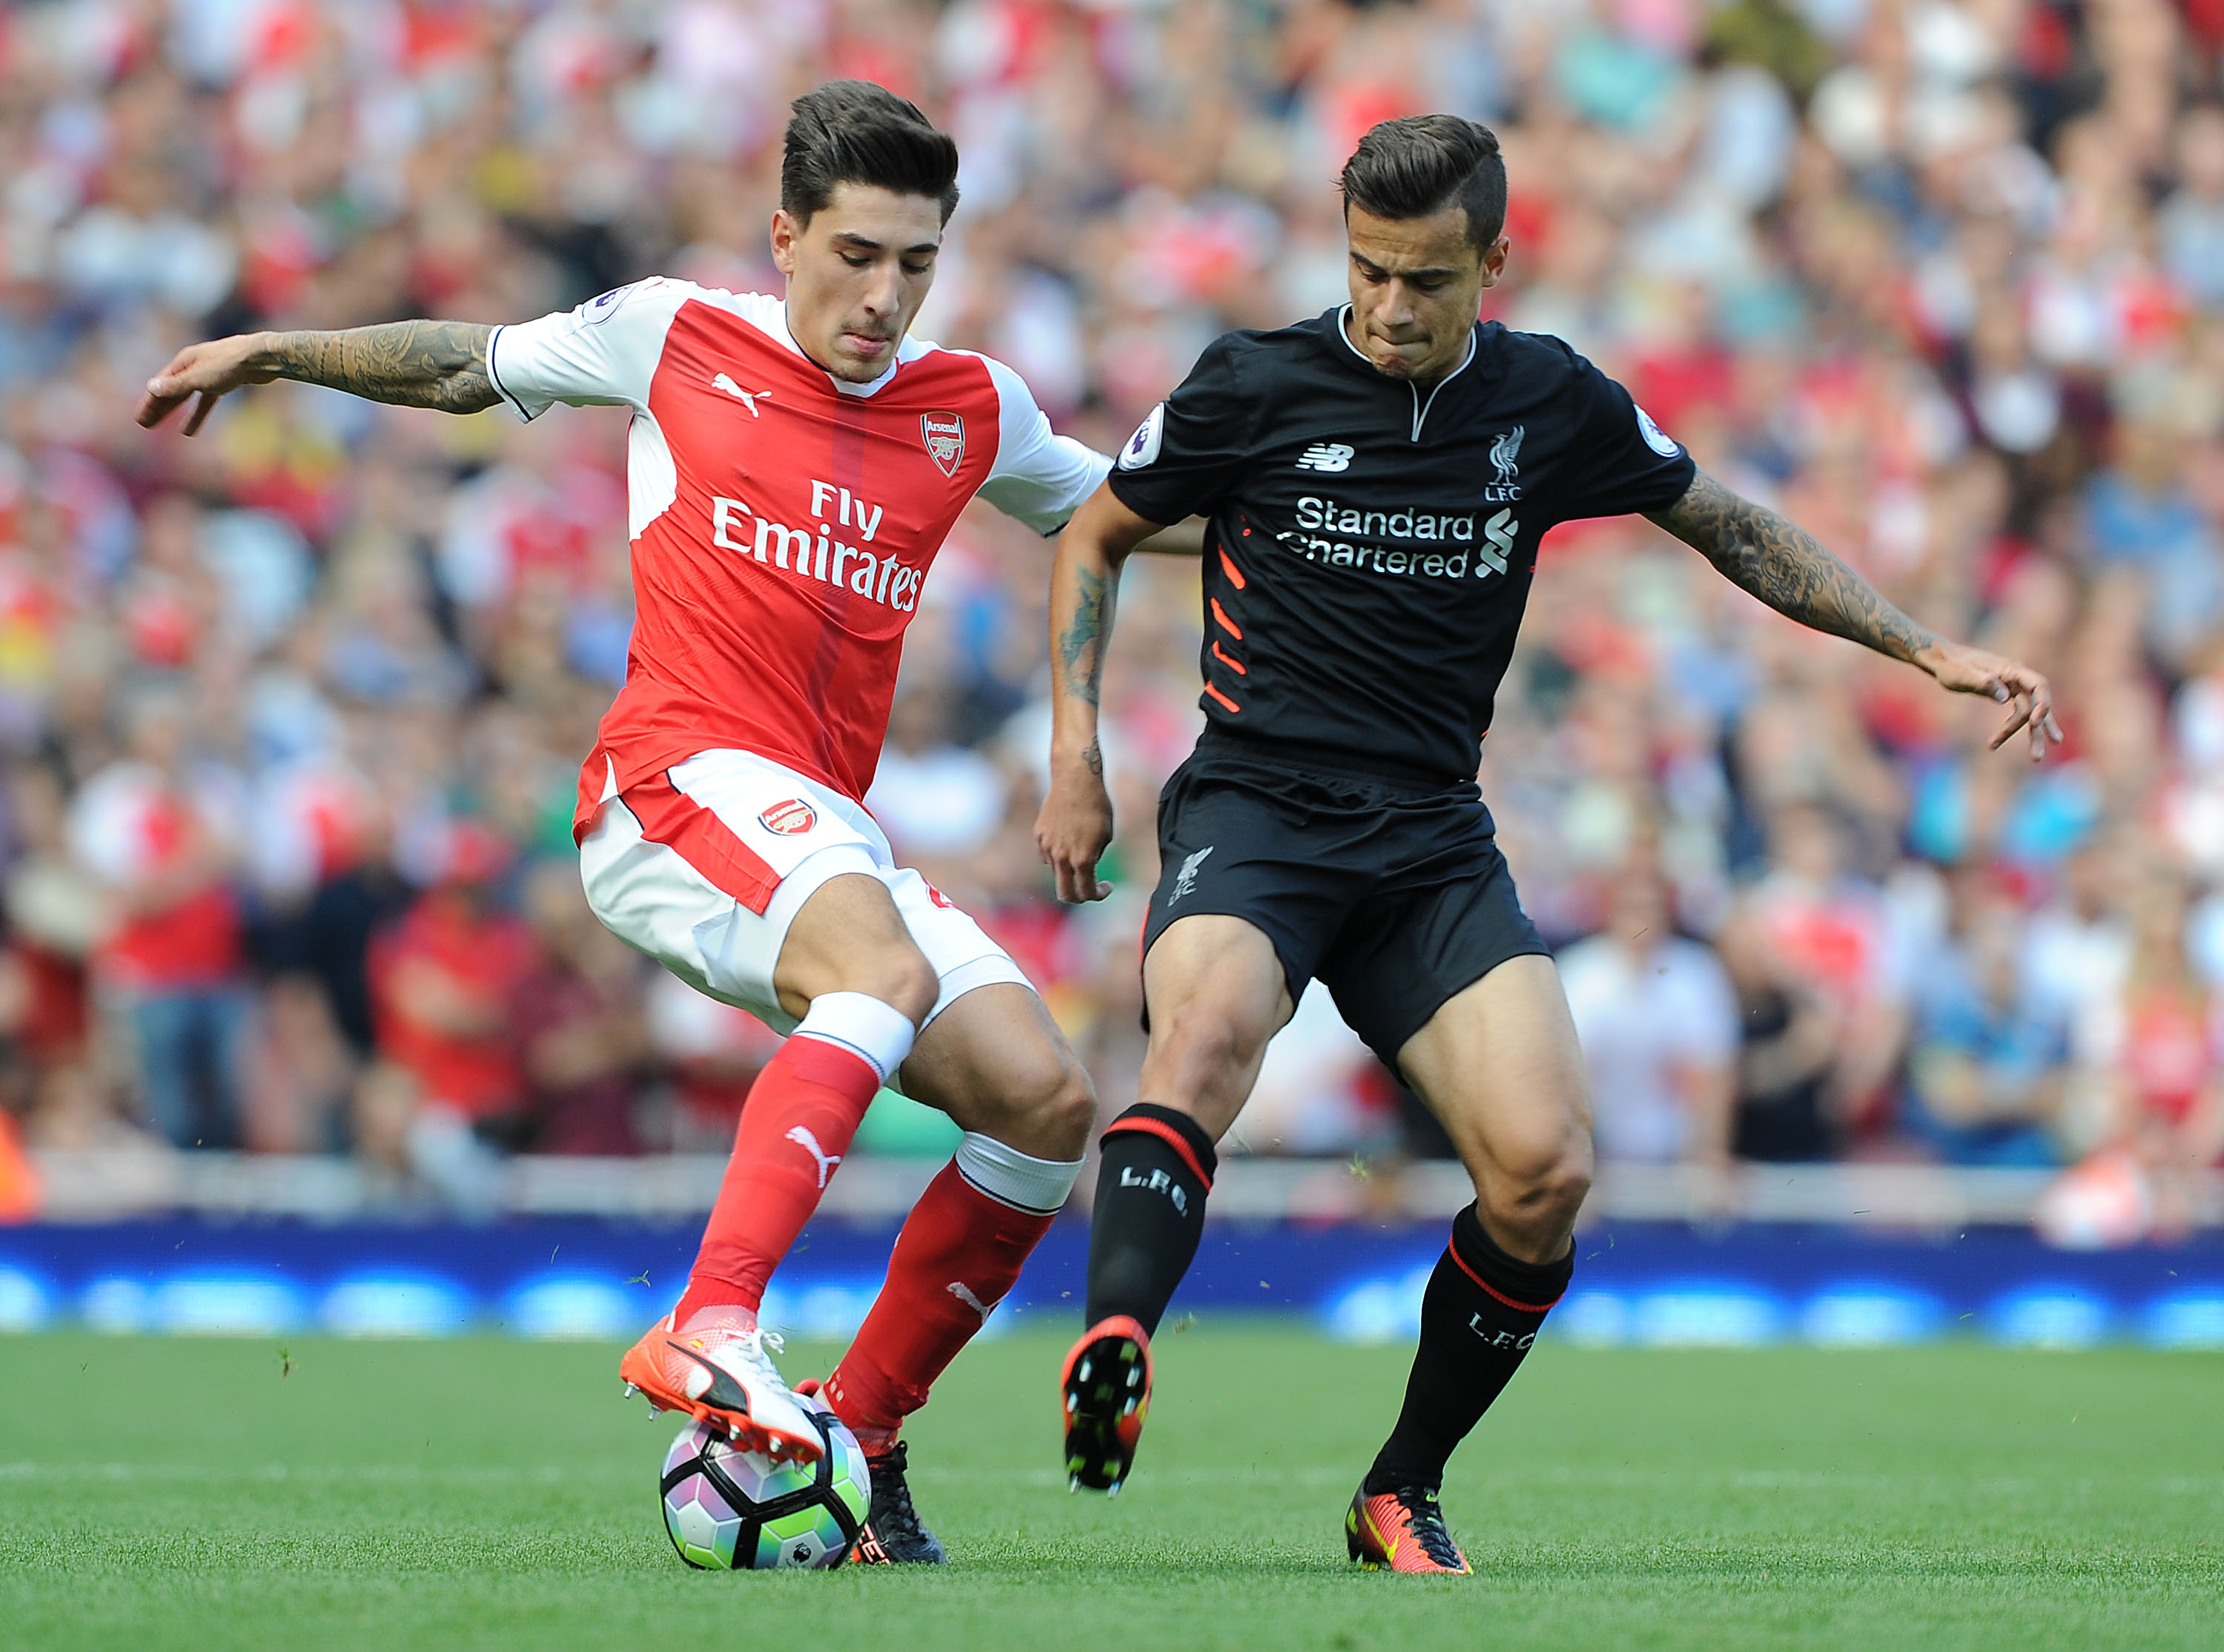 liverpool vs arsenal - photo #12